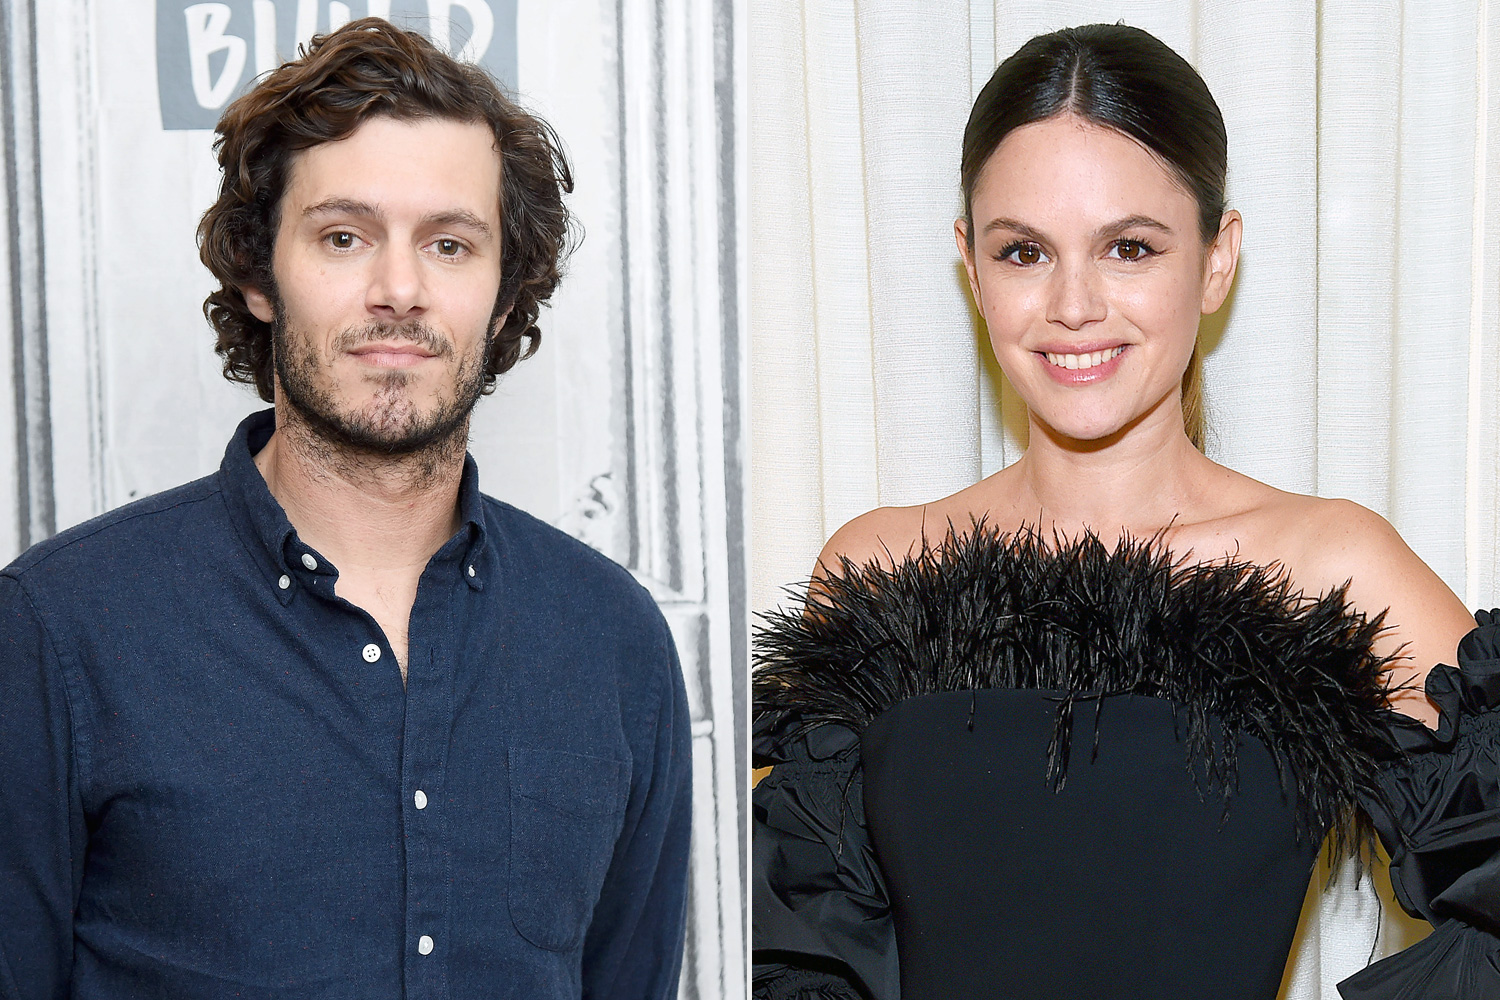 Rachel Bilson Jokingly Apologizes for Adam Brody Breakup: 'He Fared Really Well'